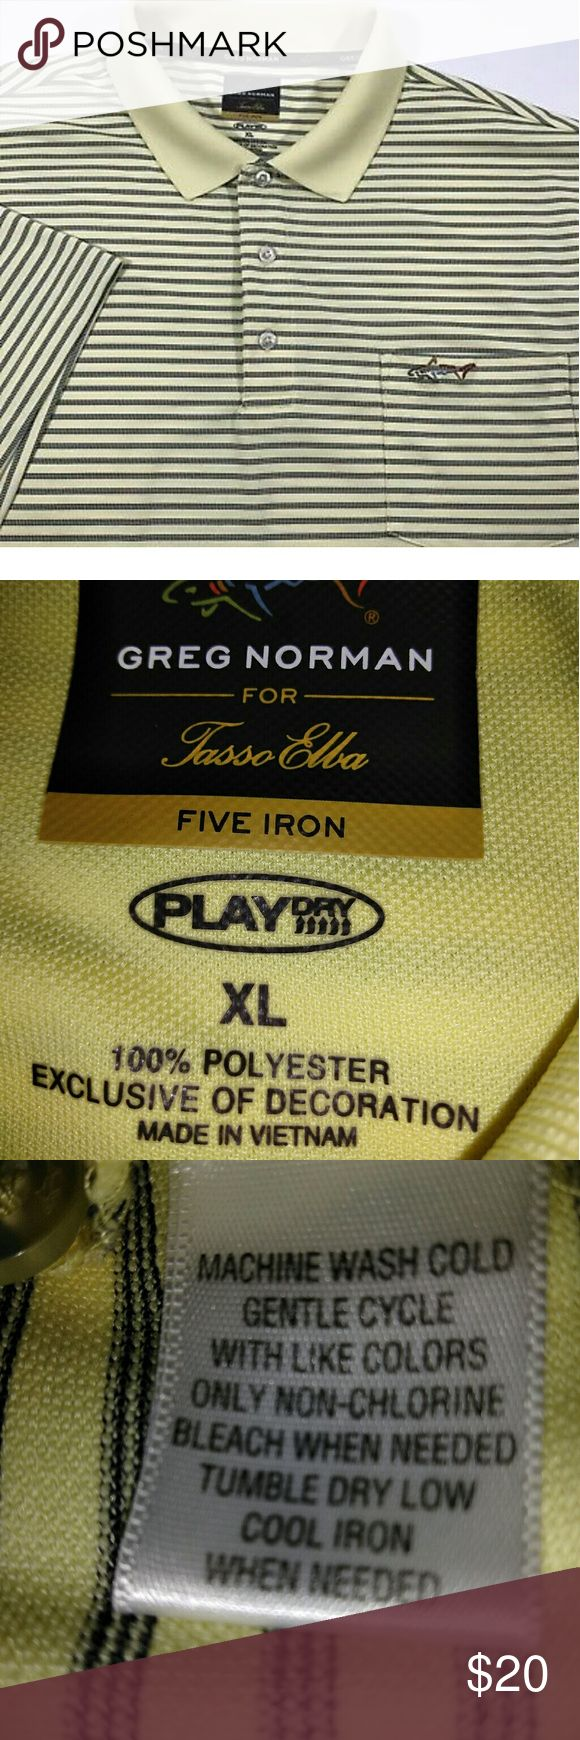 GREG NORMAN Five Iron Play Dry Golf Polo Shirt Greg Norman for Tasso Elba Like New!  Play Dry Polo Emblazoned pocket Three button placket Polyester Tasso Elba Shirts Polos